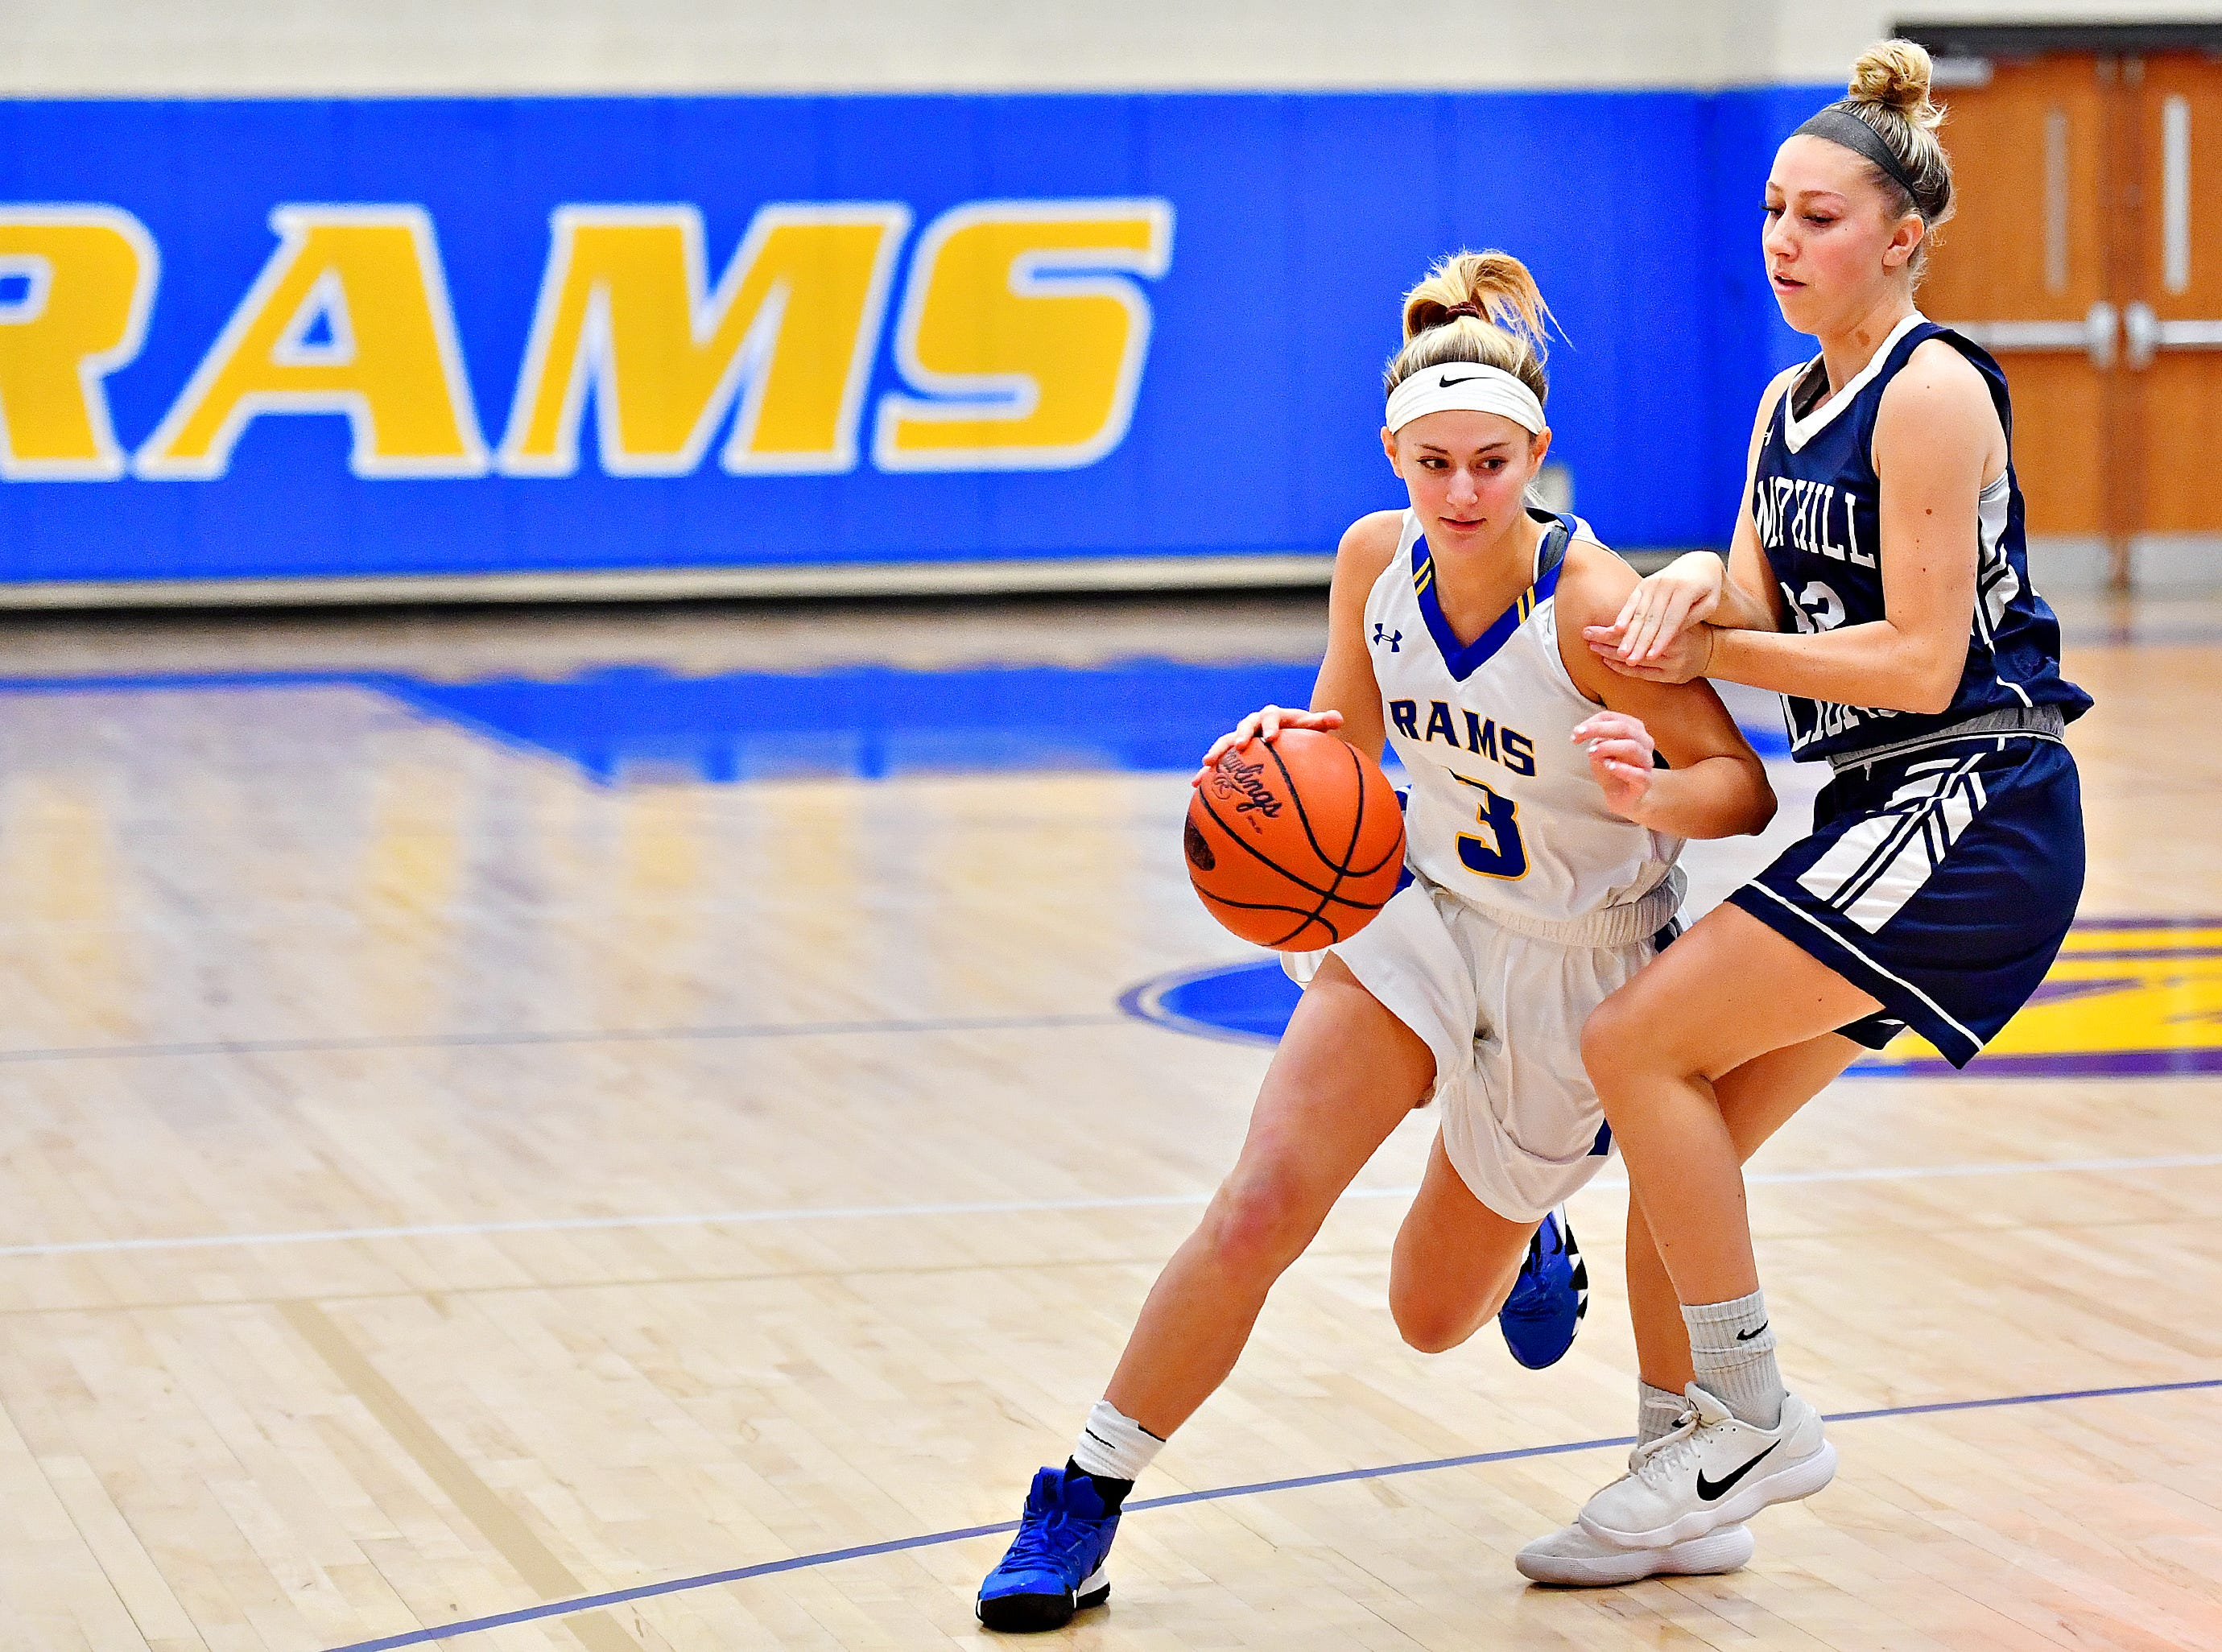 Kennard-Dale's Megan Halczuk, left, works to get around Camp Hill's Sheridan Reid during girls' basketball action at Kennard-Dale High School in Fawn Grove, Wednesday, Dec. 12, 2018. Kennard-Dale would win the game 47-28. Dawn J. Sagert photo